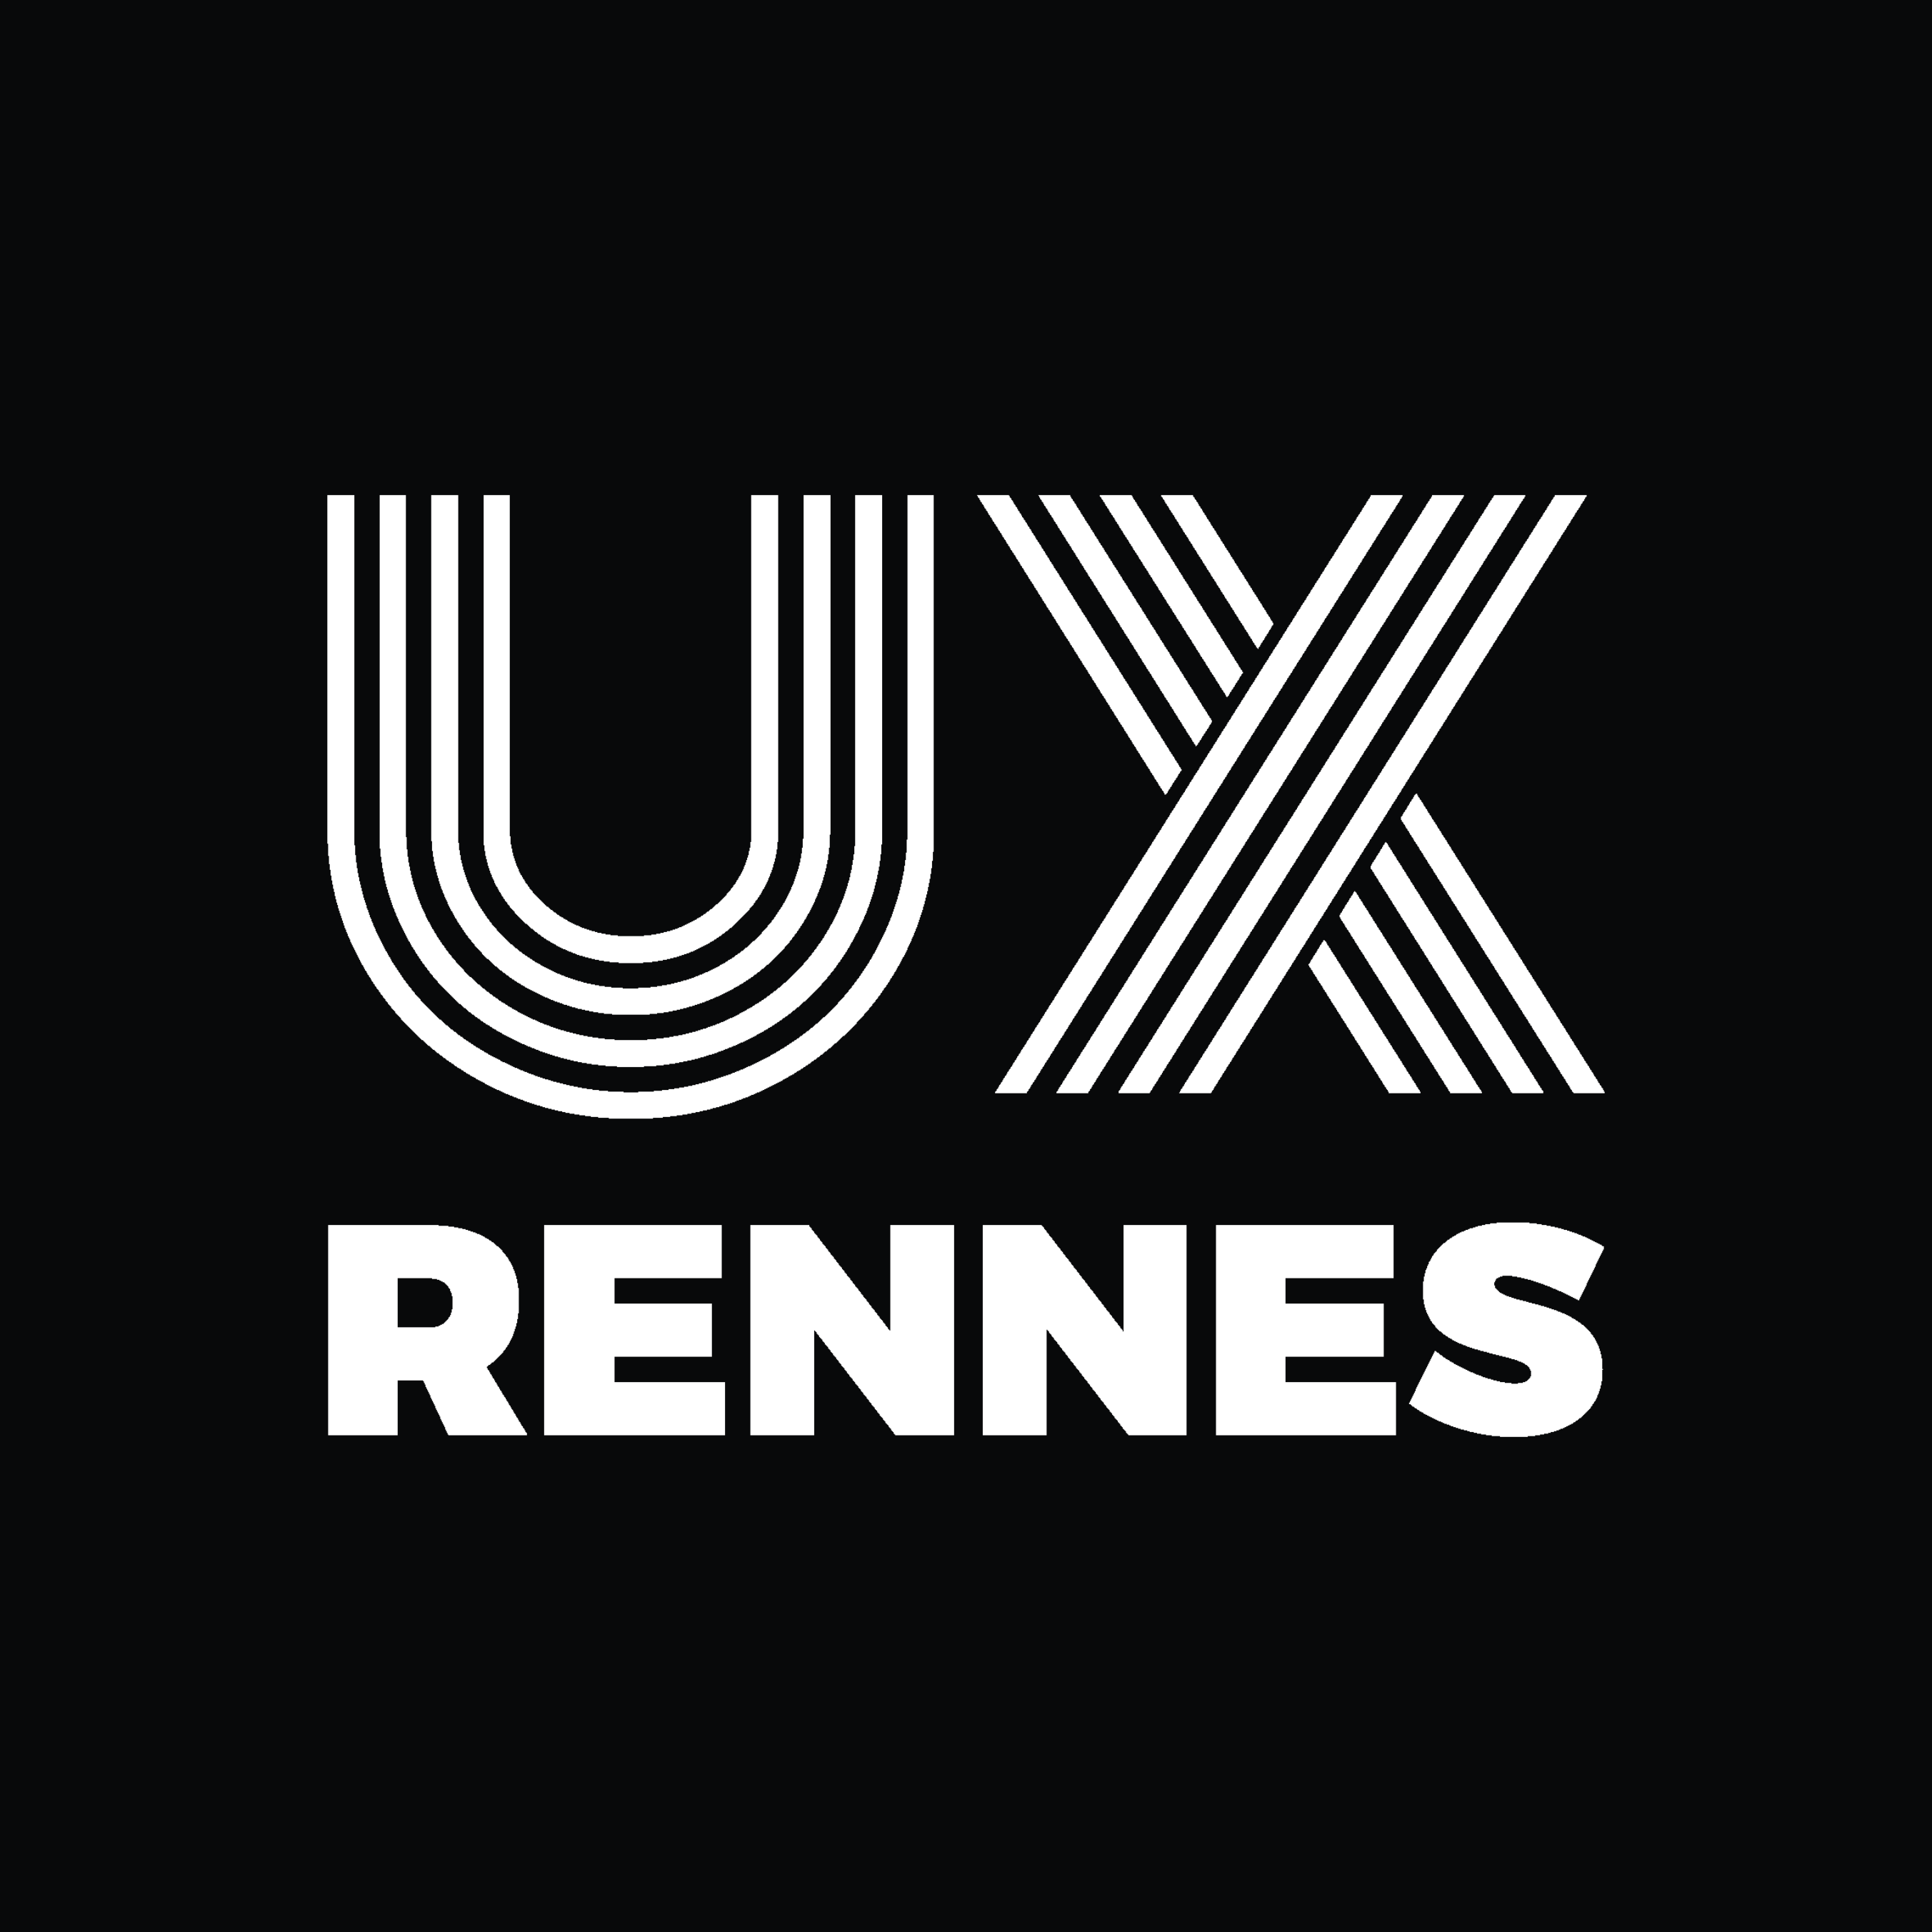 UX Rennes